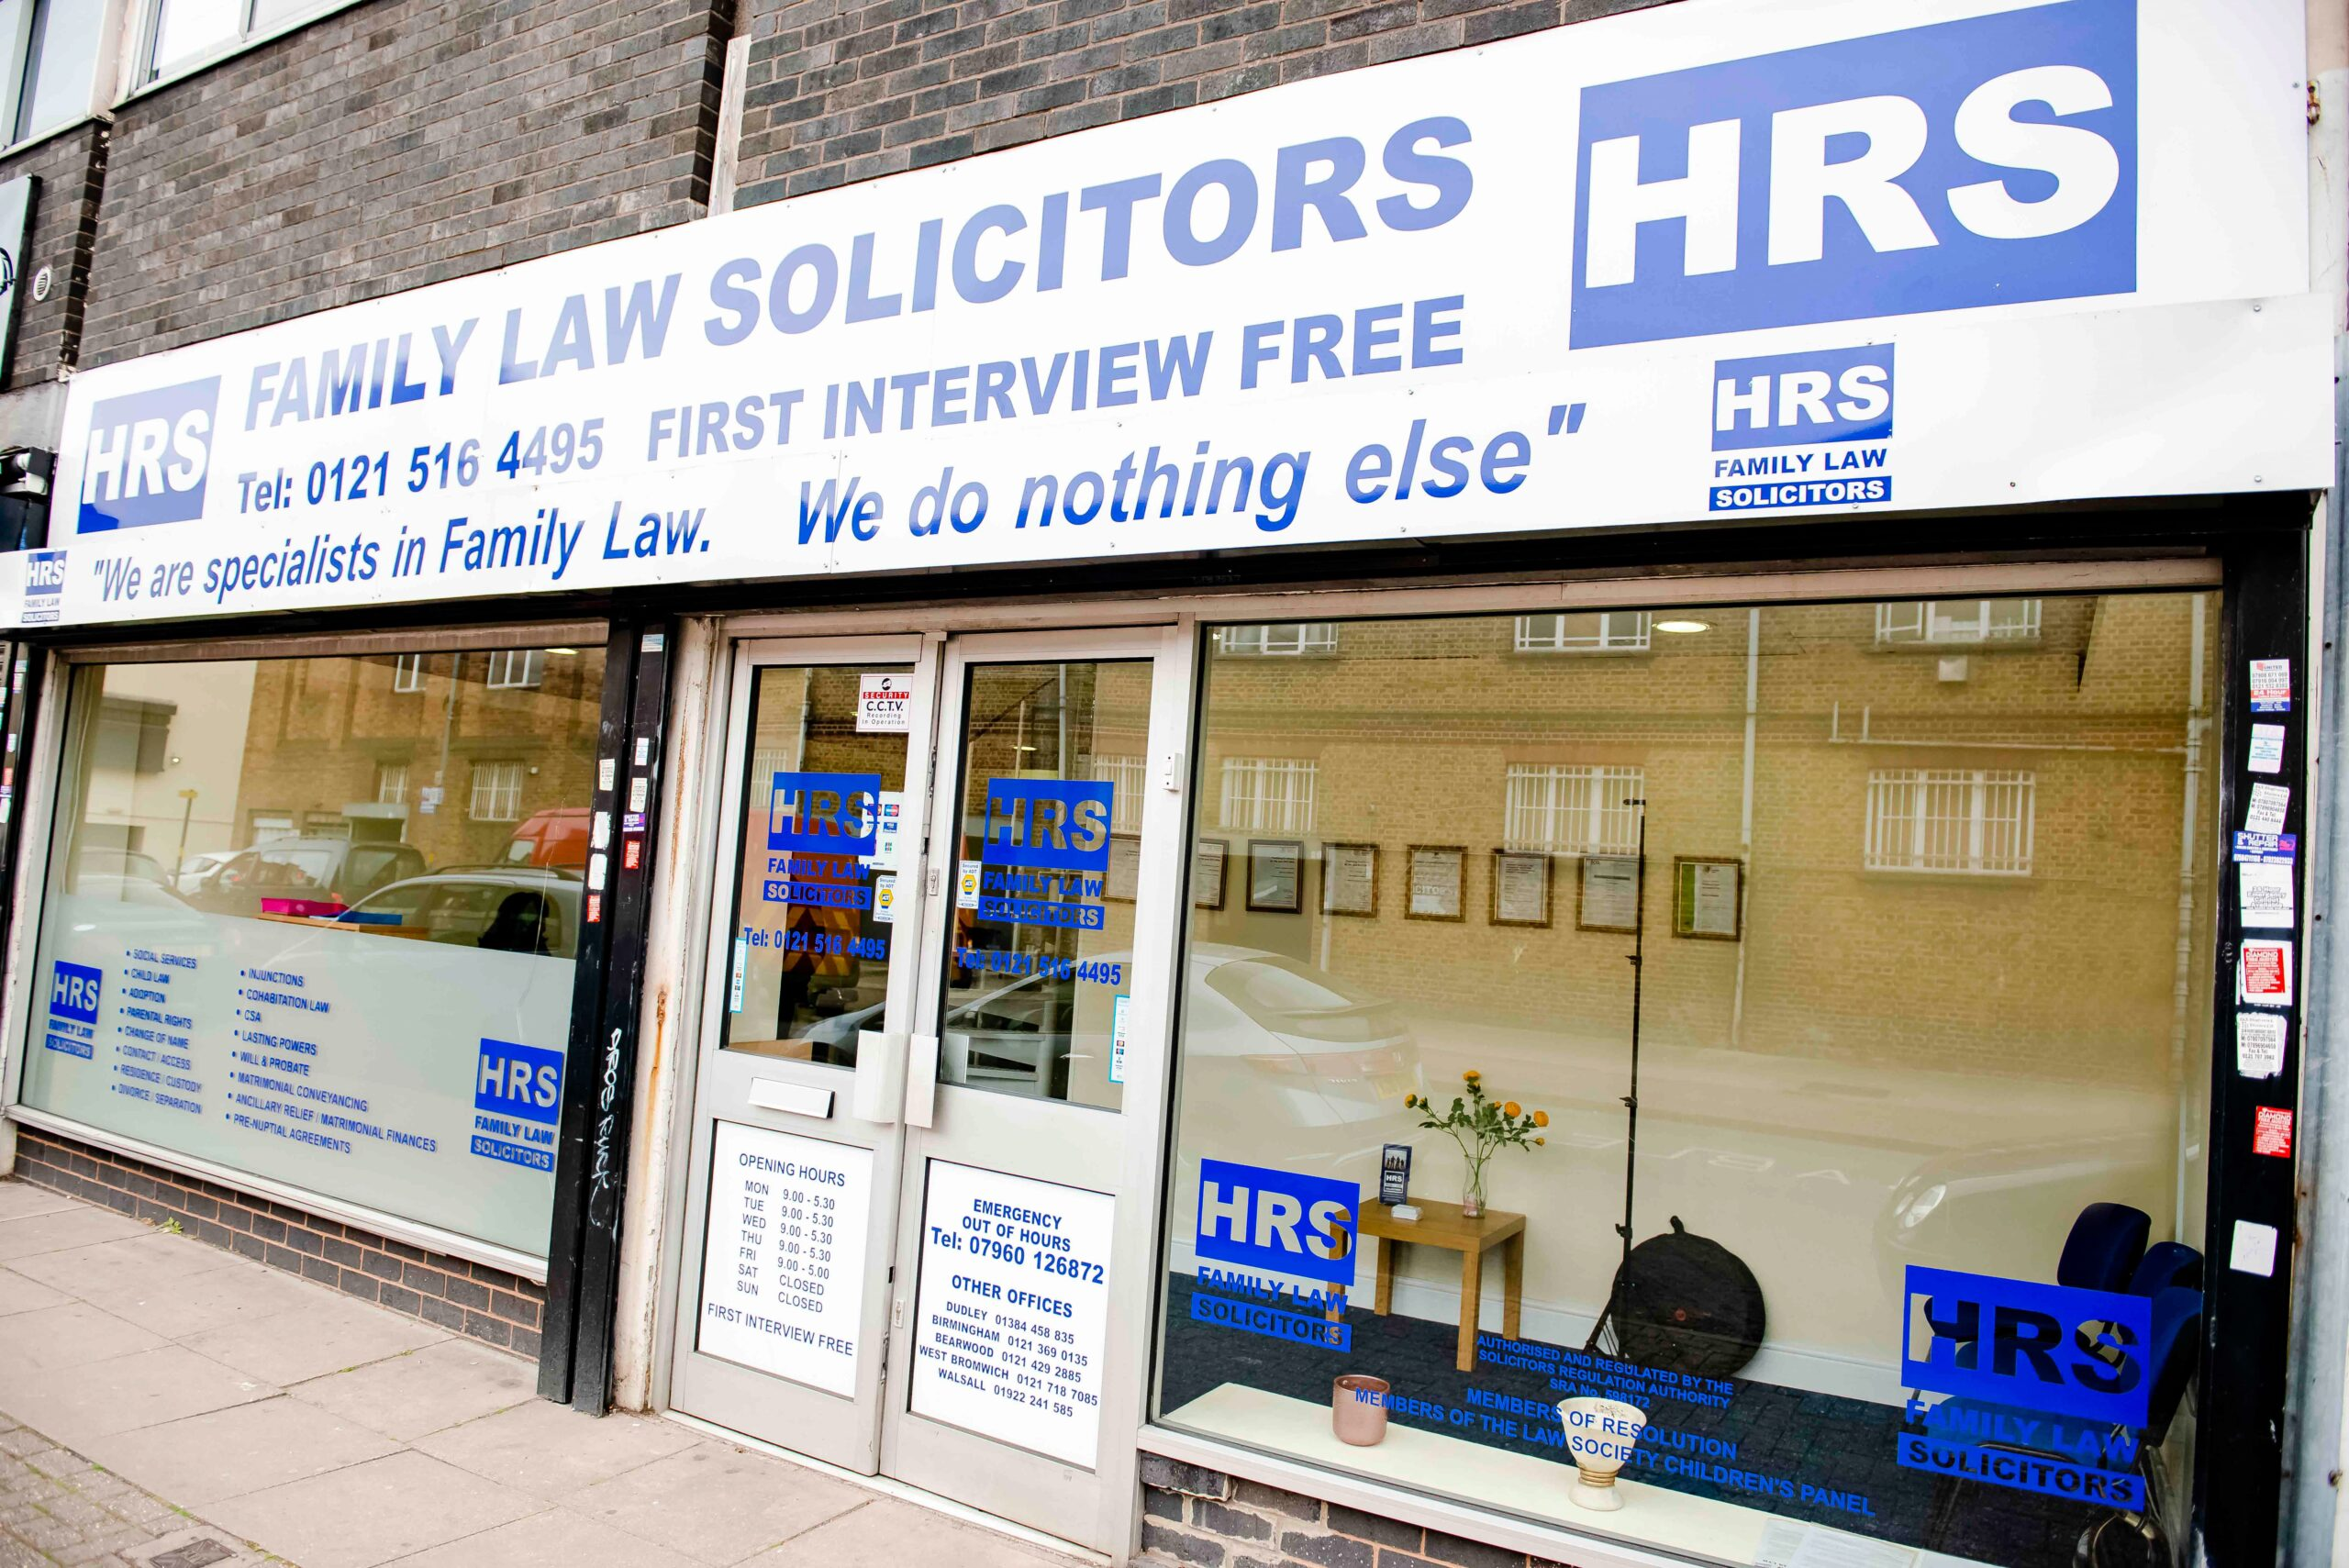 HRS Family Law Solicitors Erdington